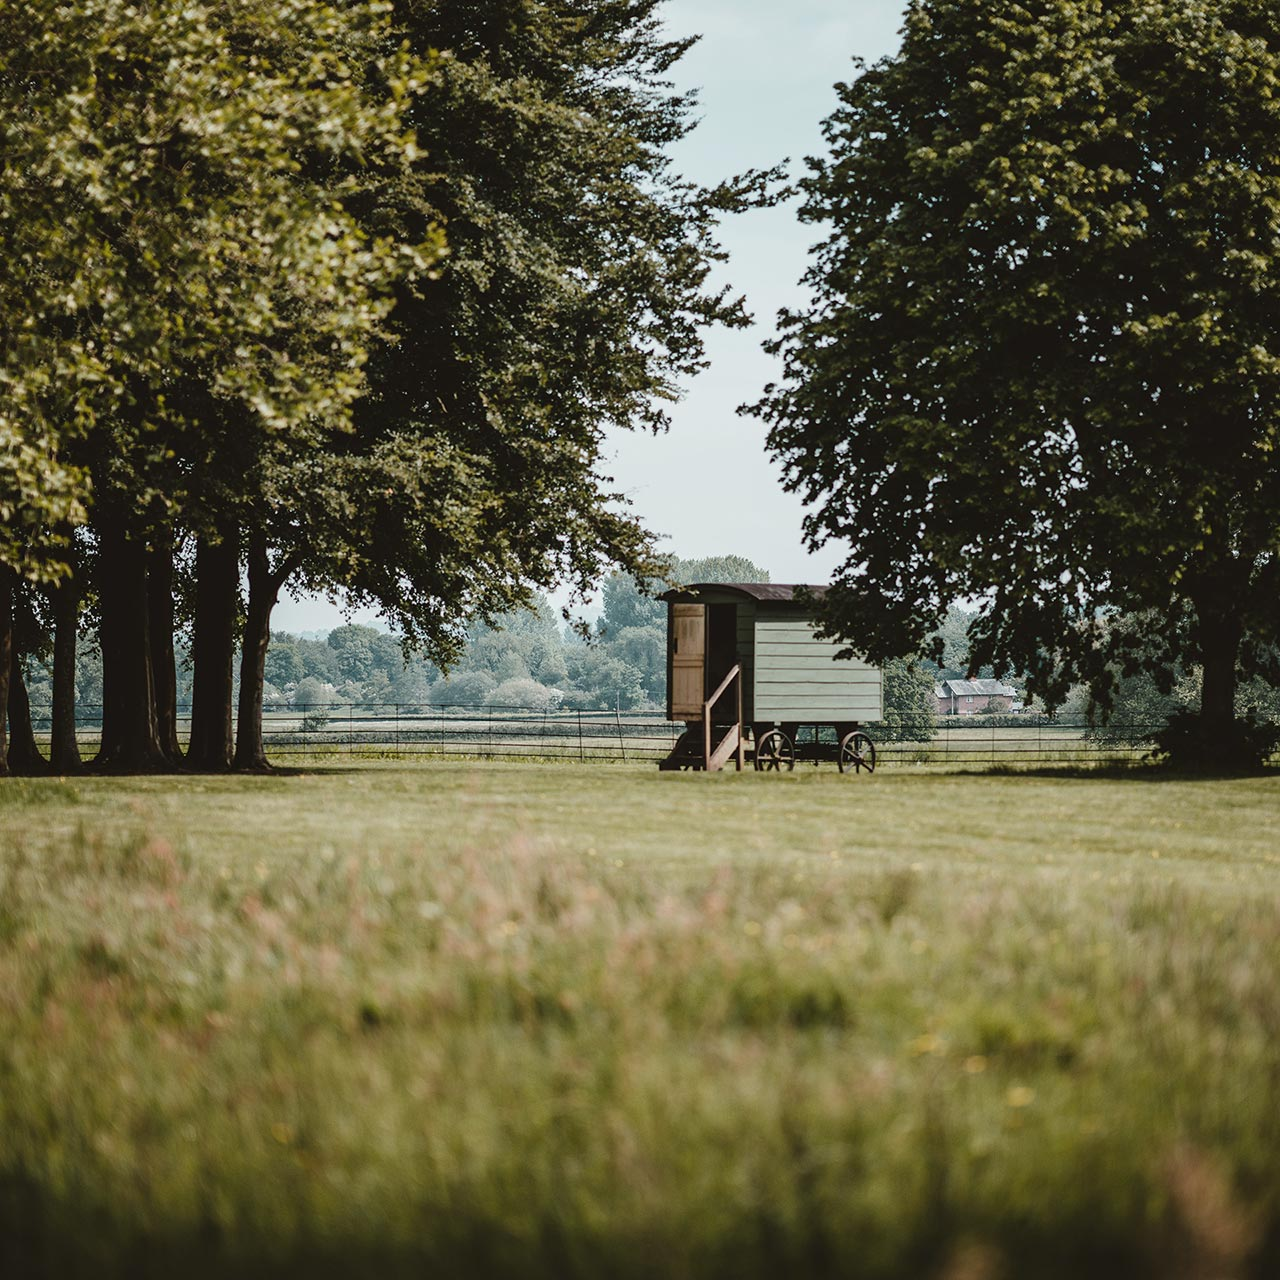 shepherd's hut accommodation in a field surrounded by trees